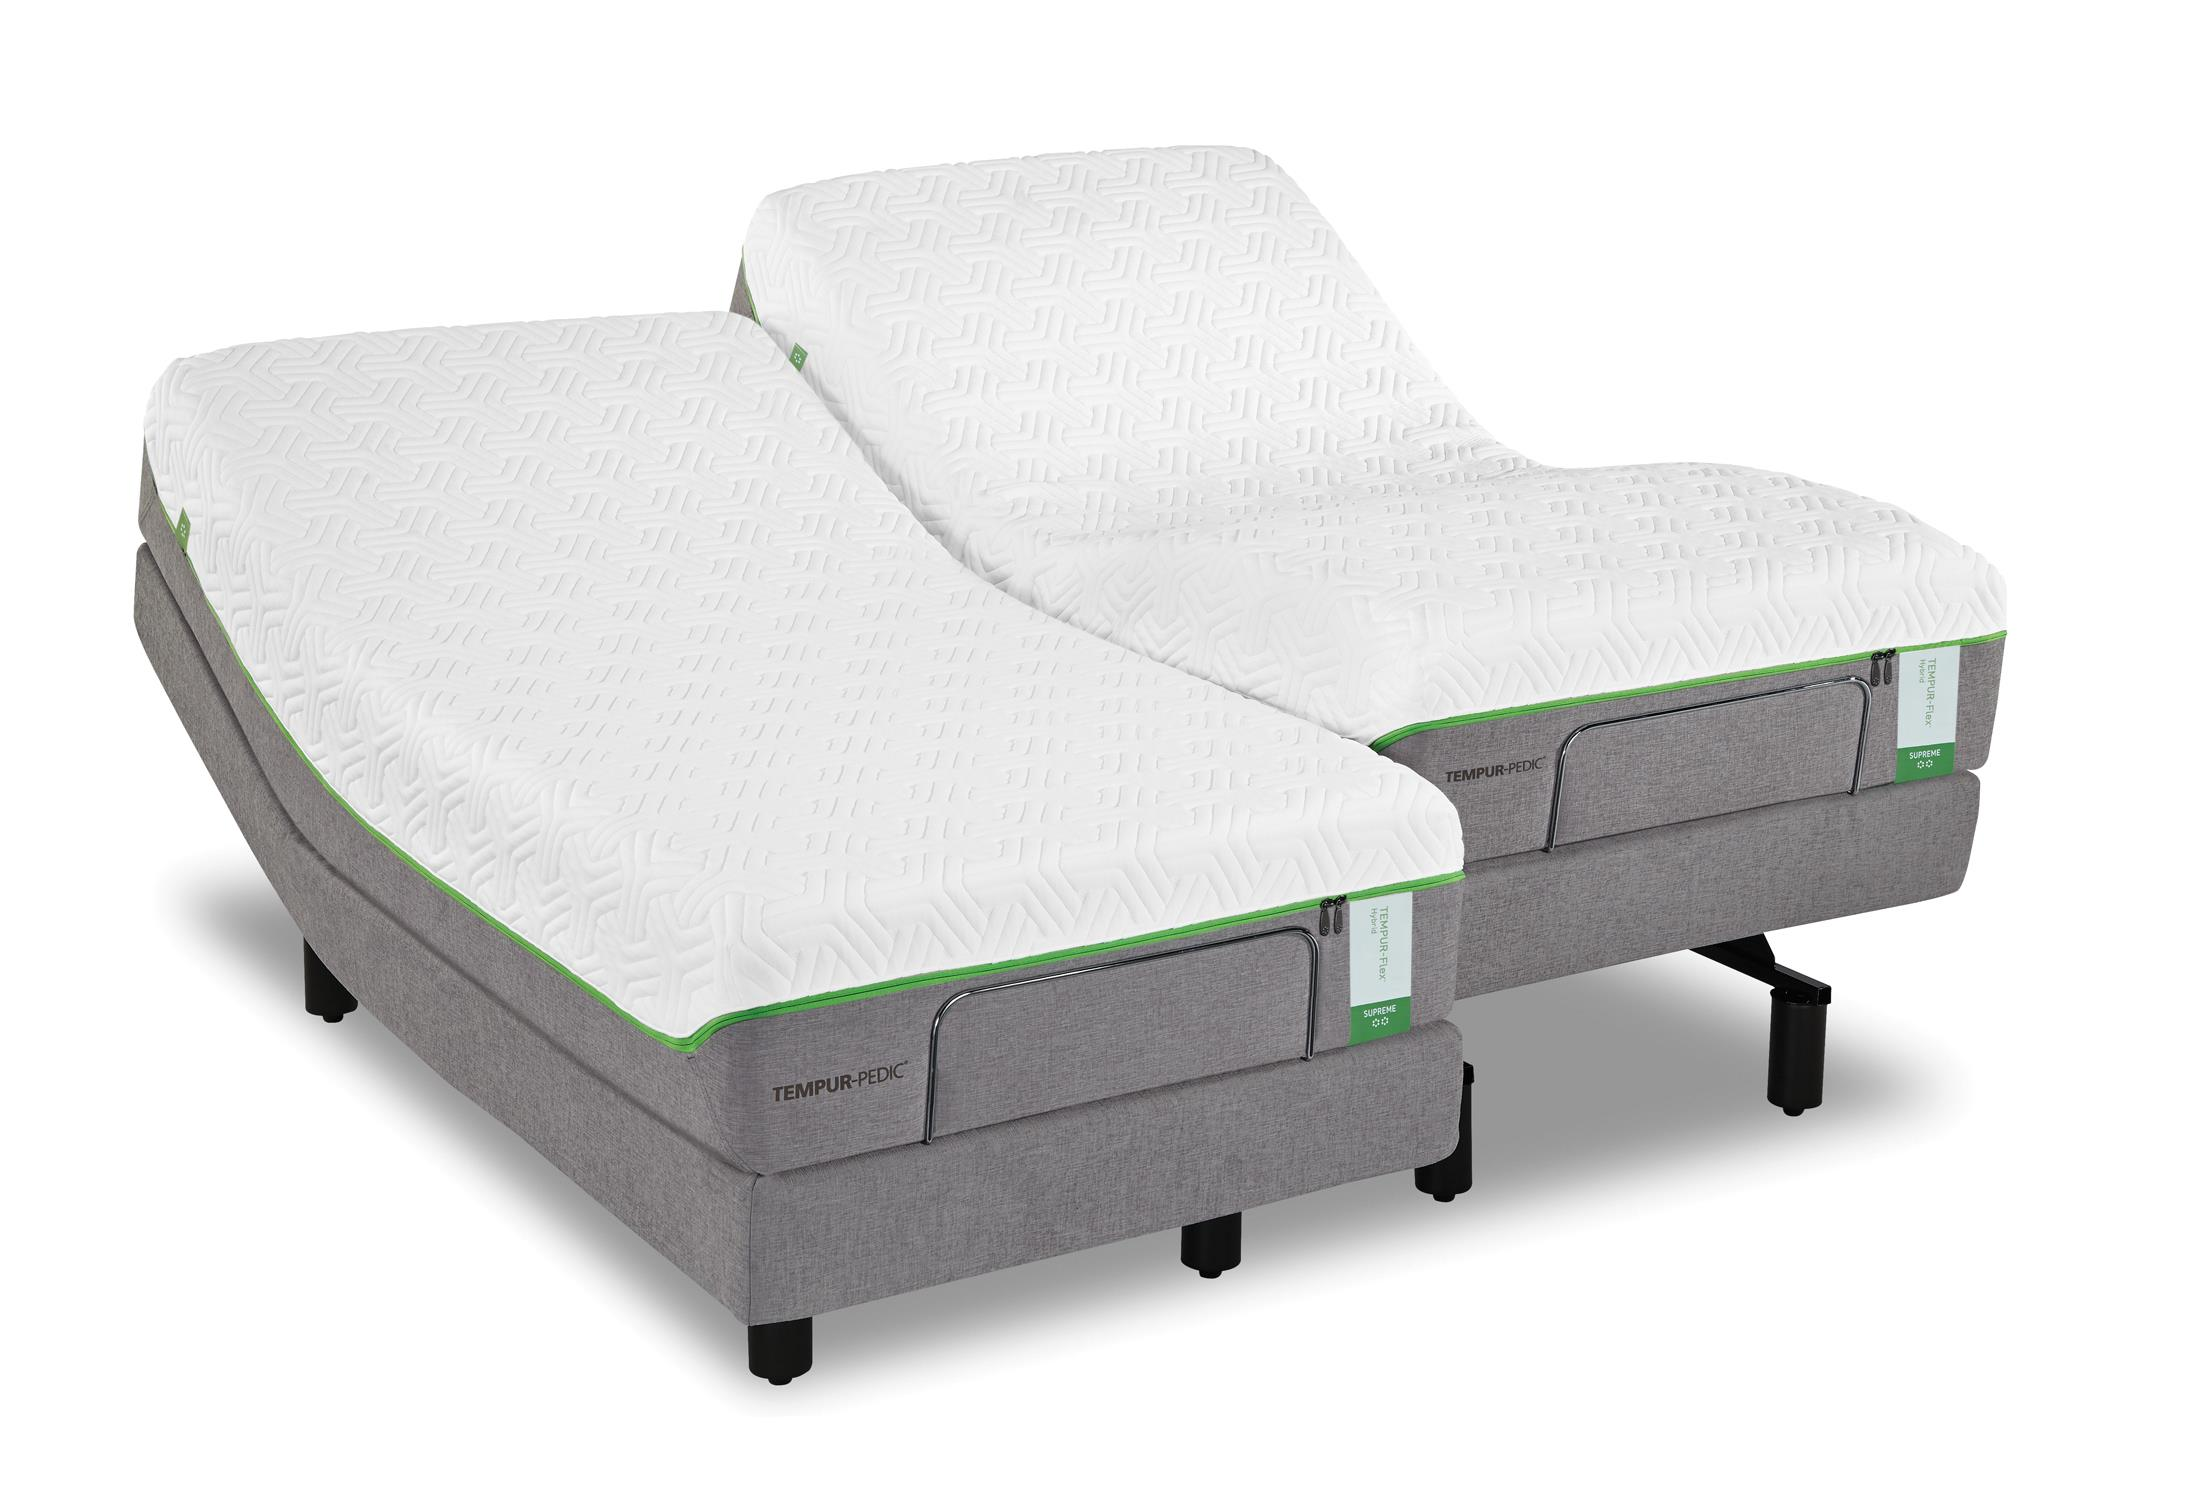 price pedic queen exclusive tempur supreme authentic mattress contour hd